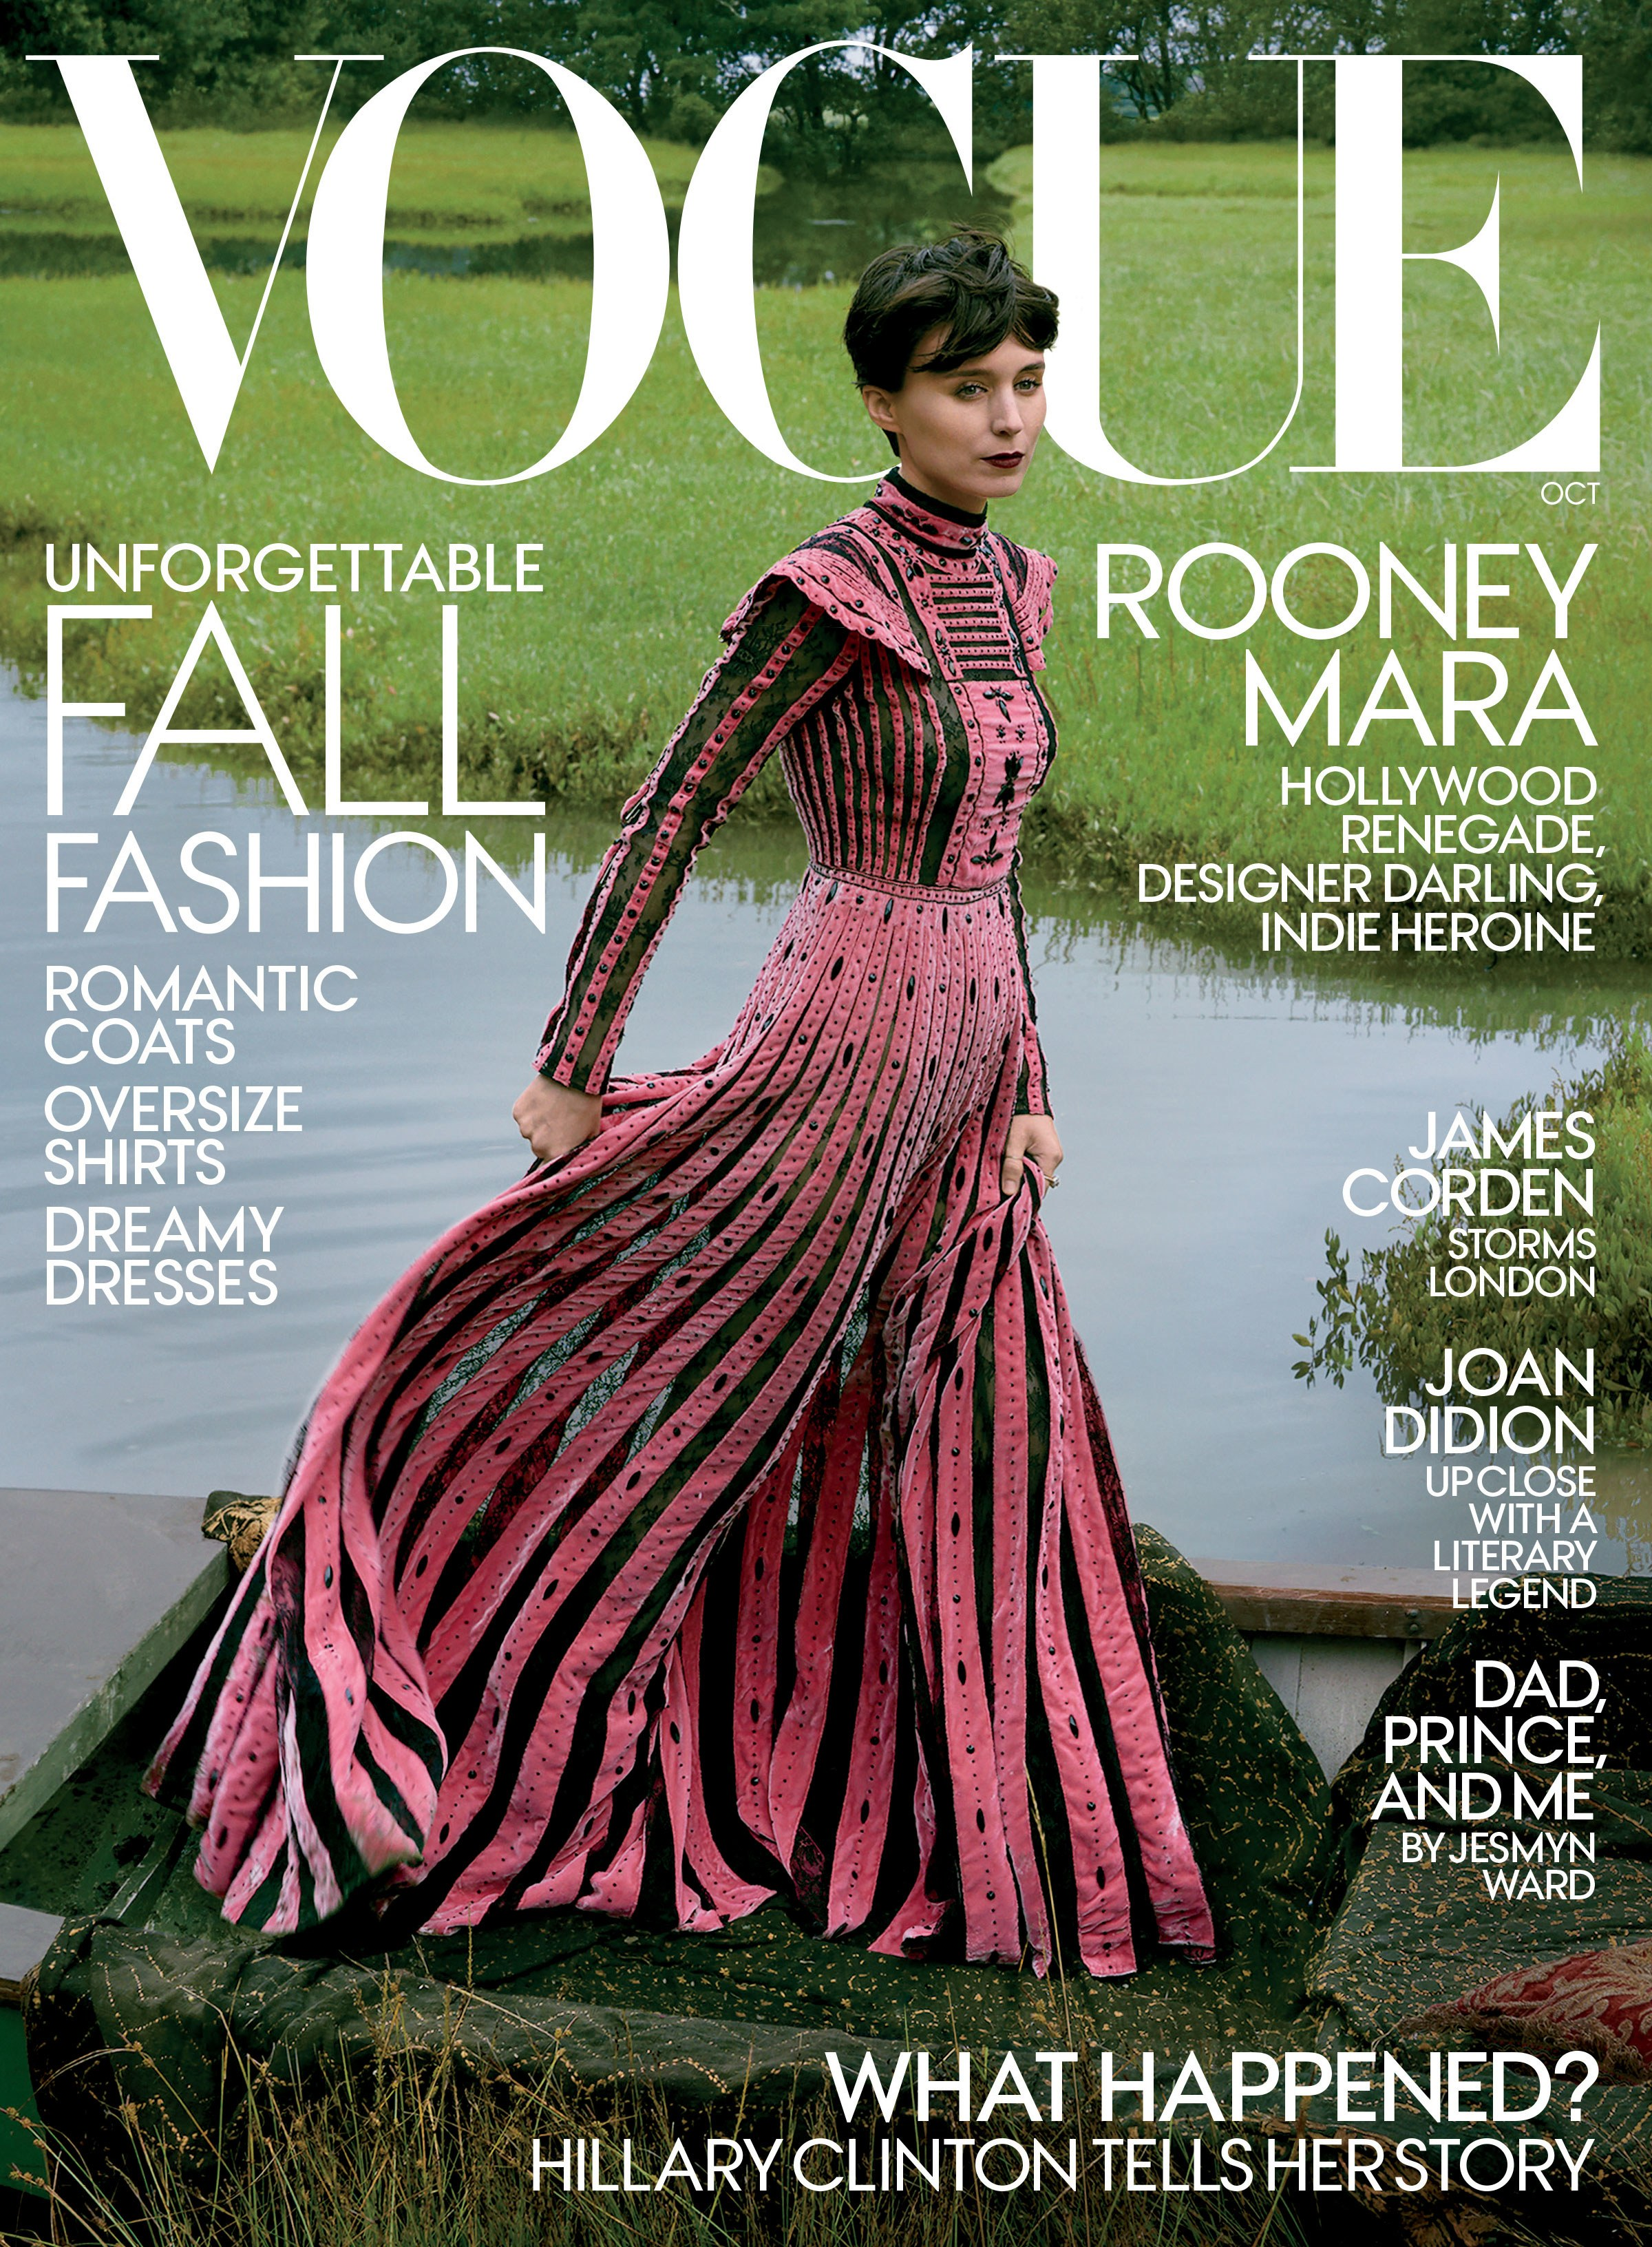 rooney-mara-vogue-cover-october-2017.jpg